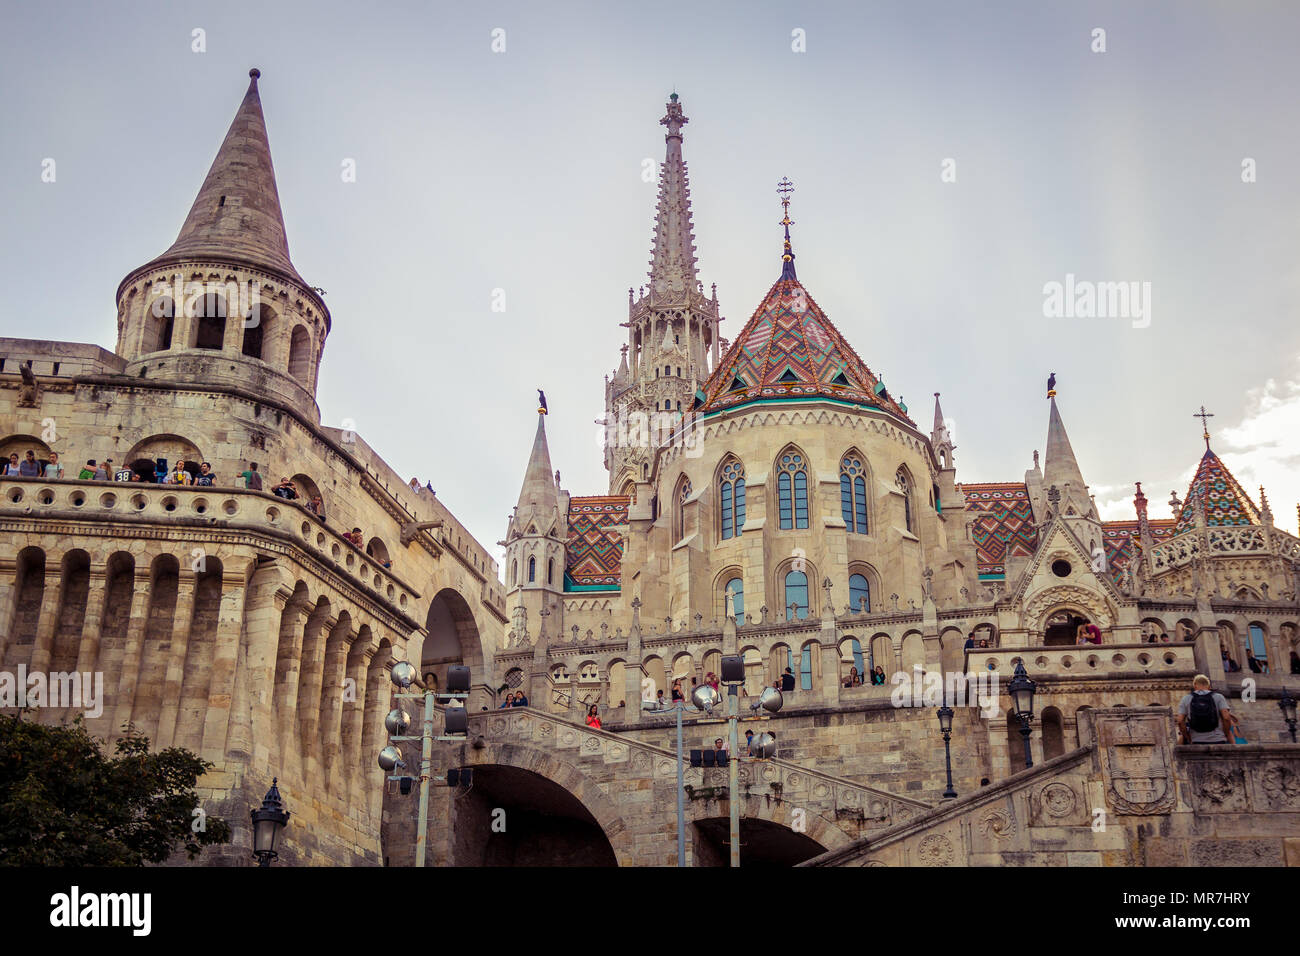 Budapest, Hungary - September 19, 2015: People visit the Fisherman's Bastion in Budapest, Hungary at sunset time - Stock Image